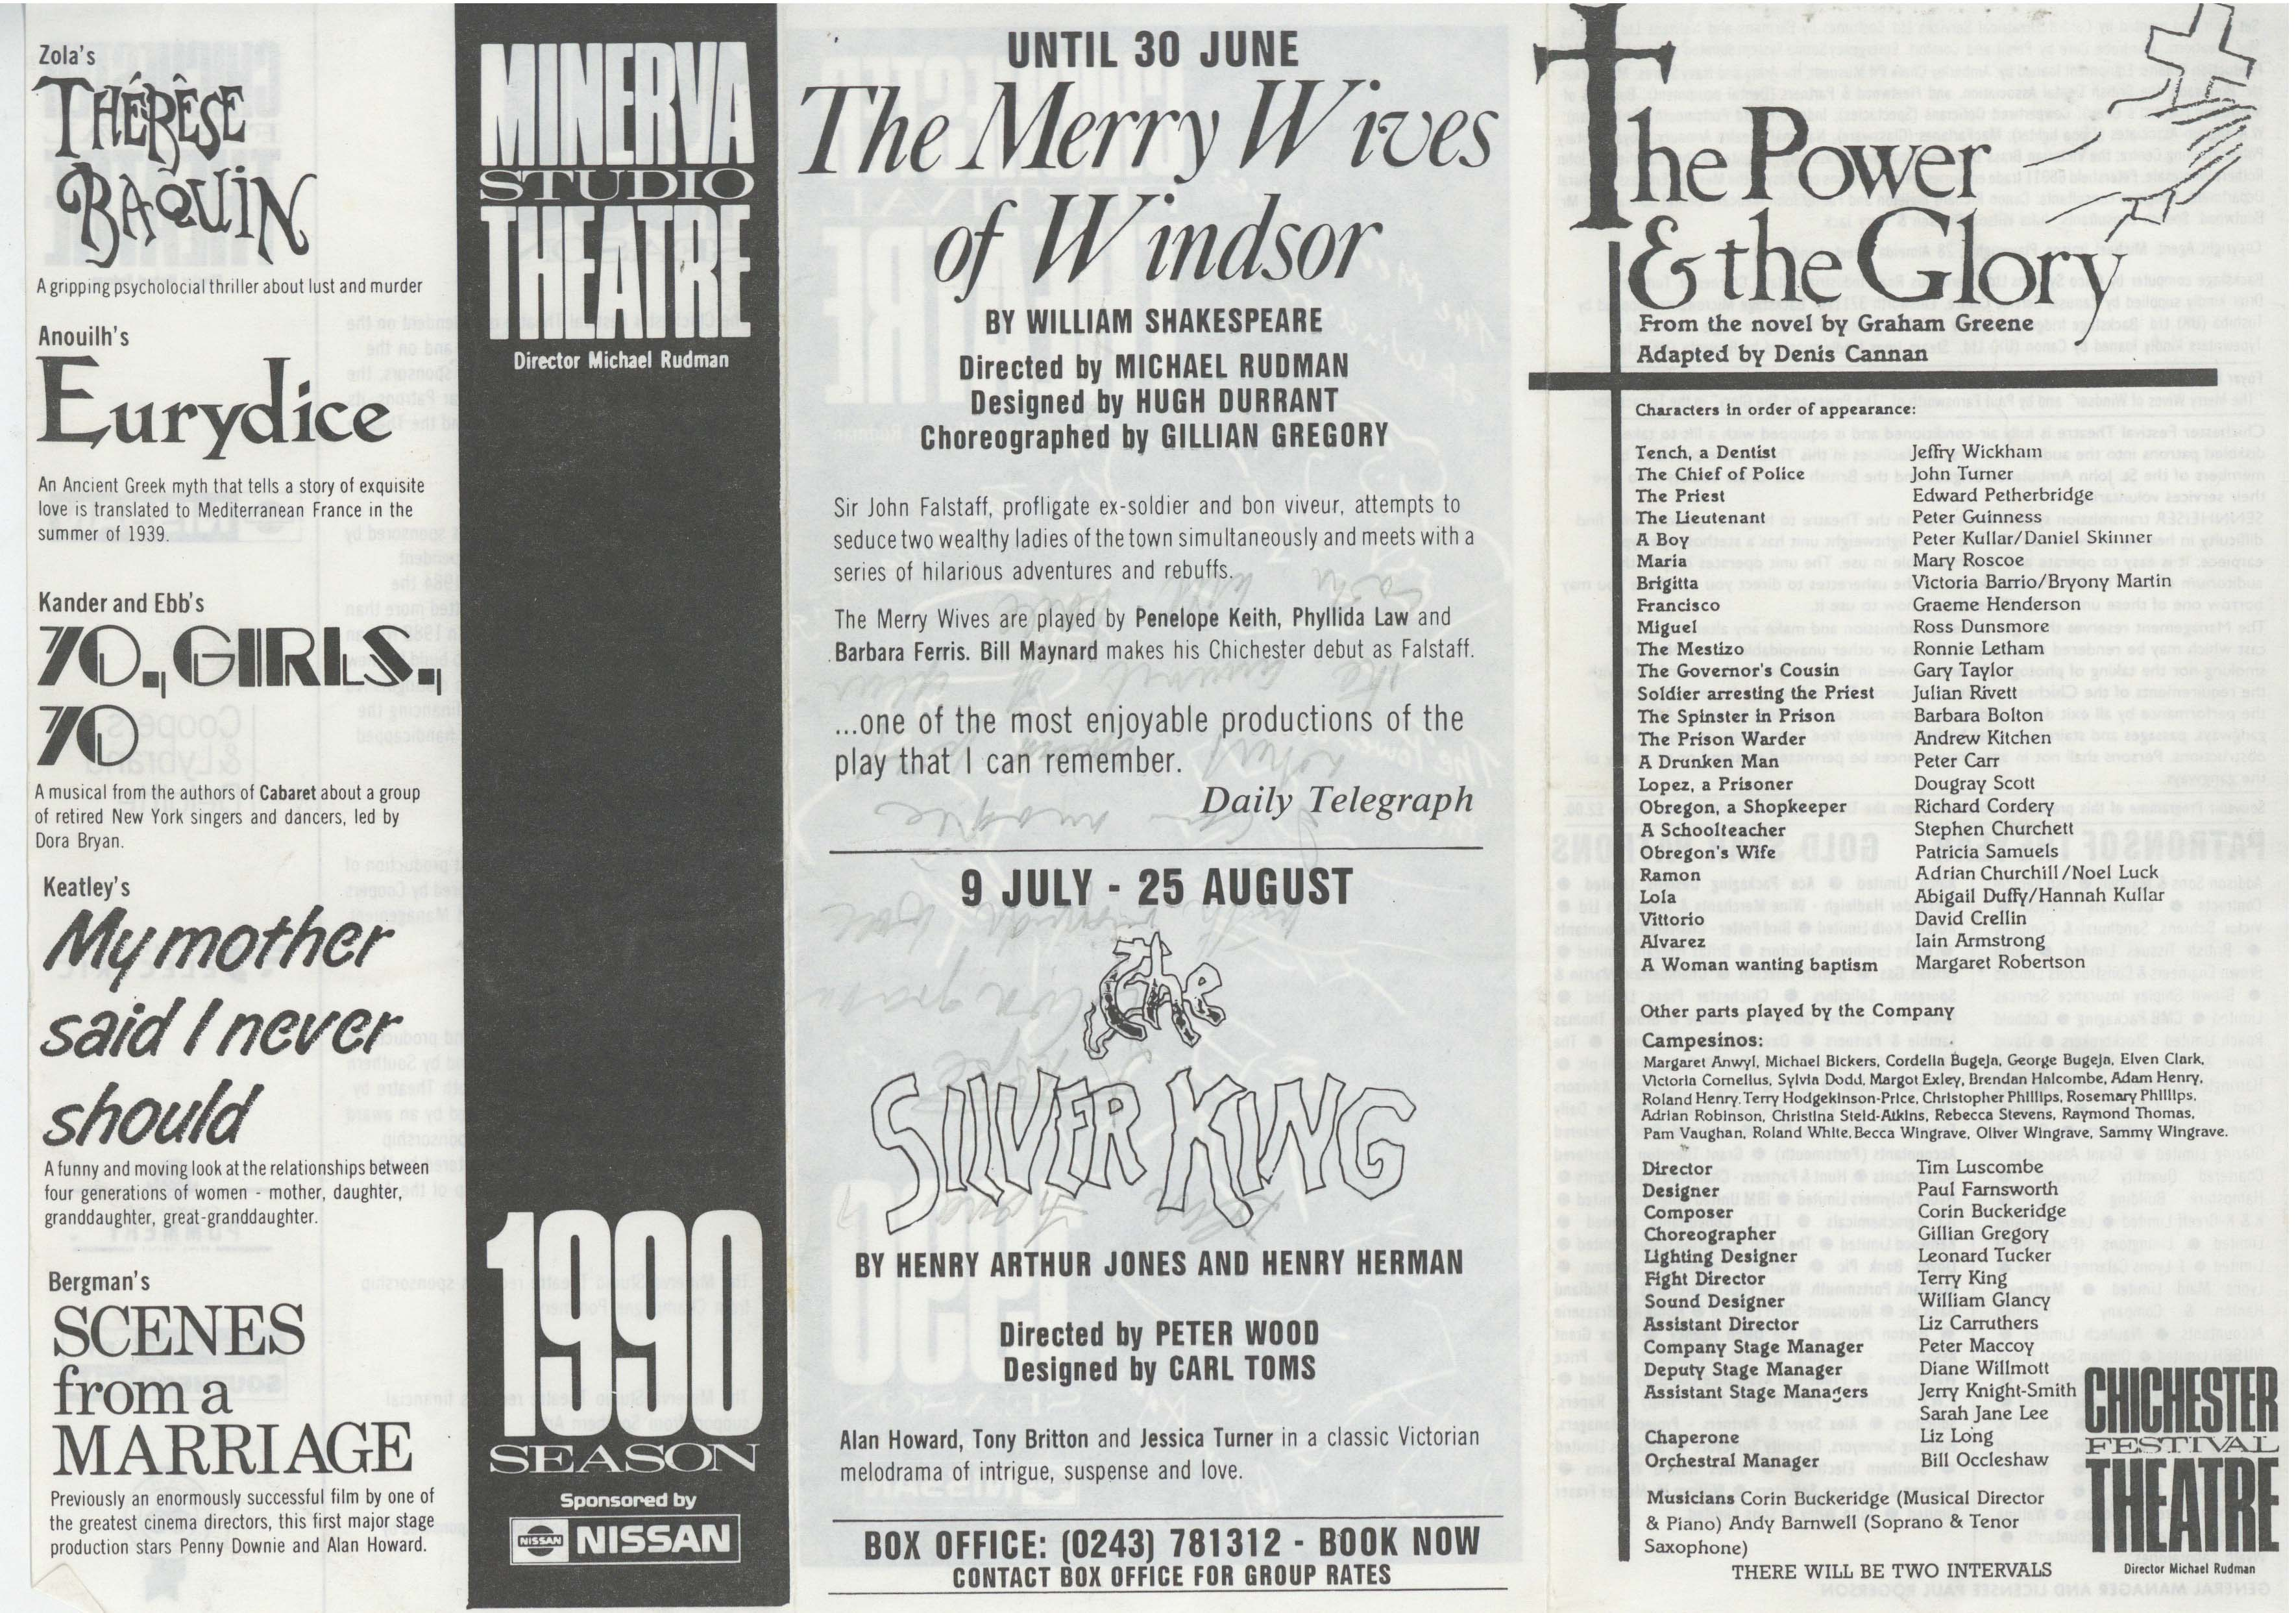 Cast List - The Power and the Glory - 1990 - 1 of 2